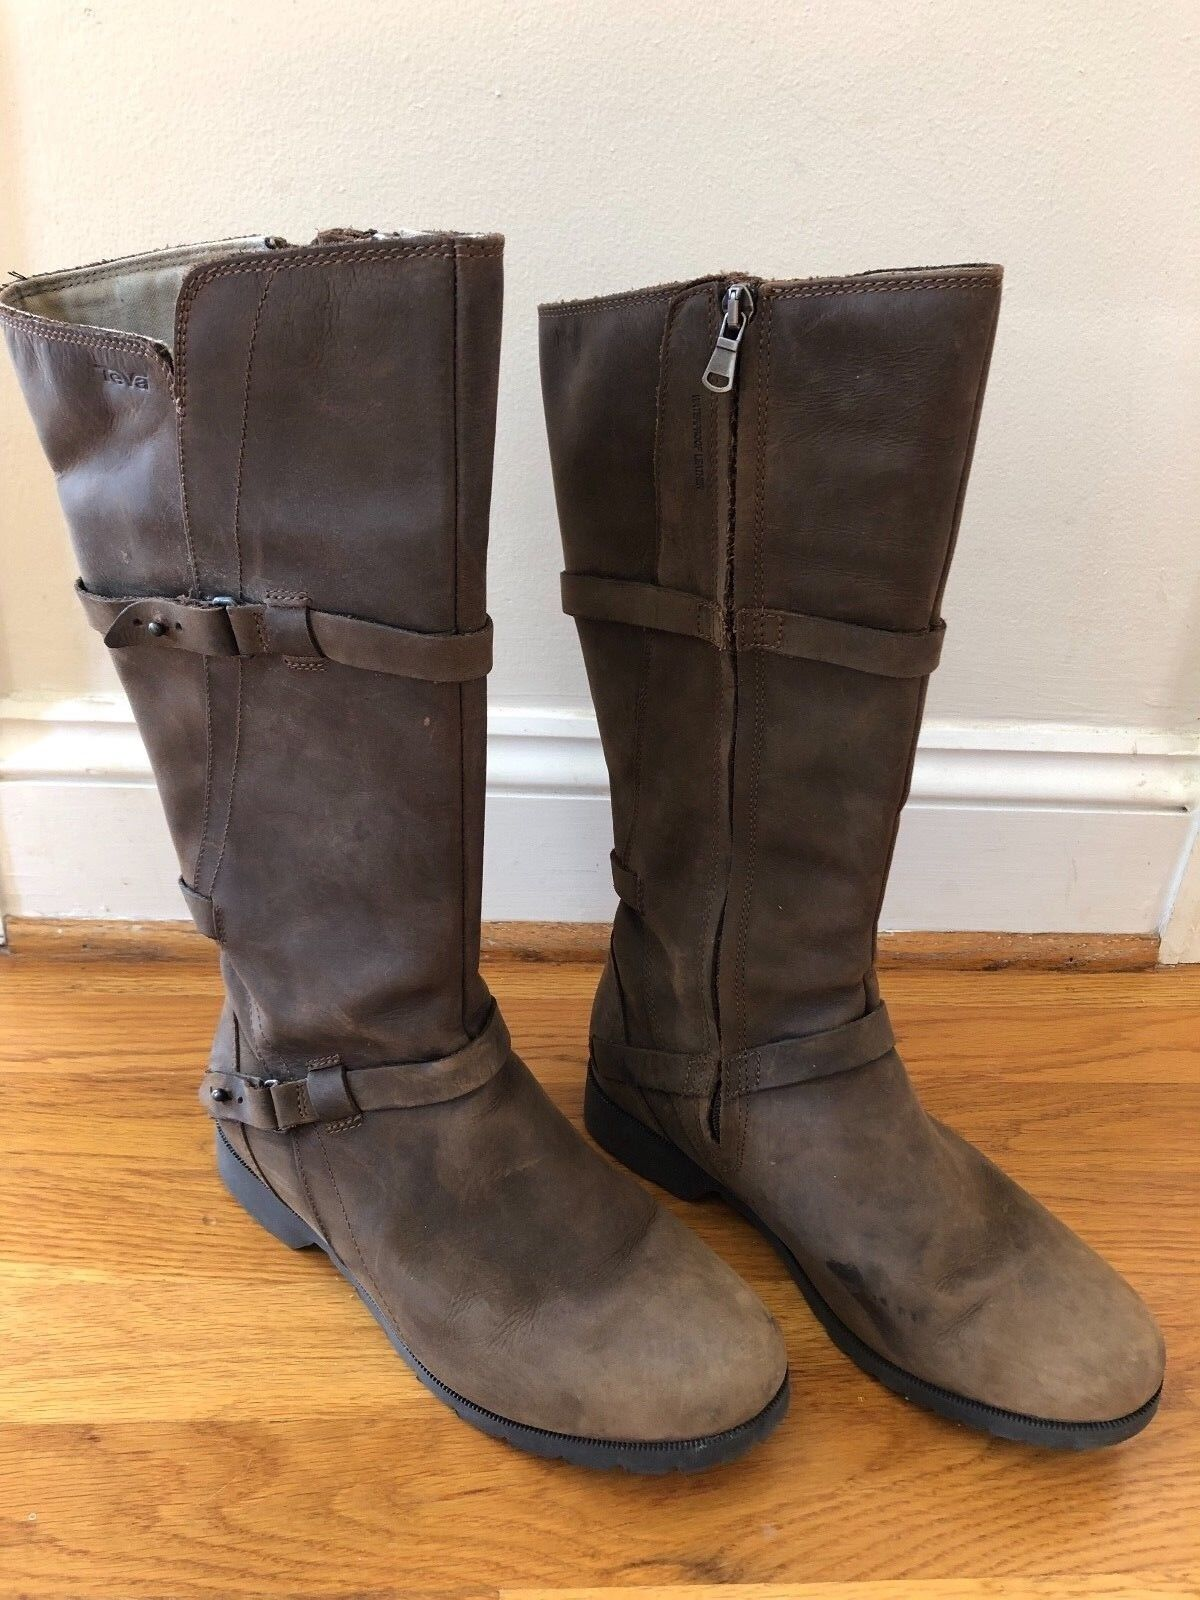 Teva Delavina Tall Women's Leather Boots Waterproof 7.5